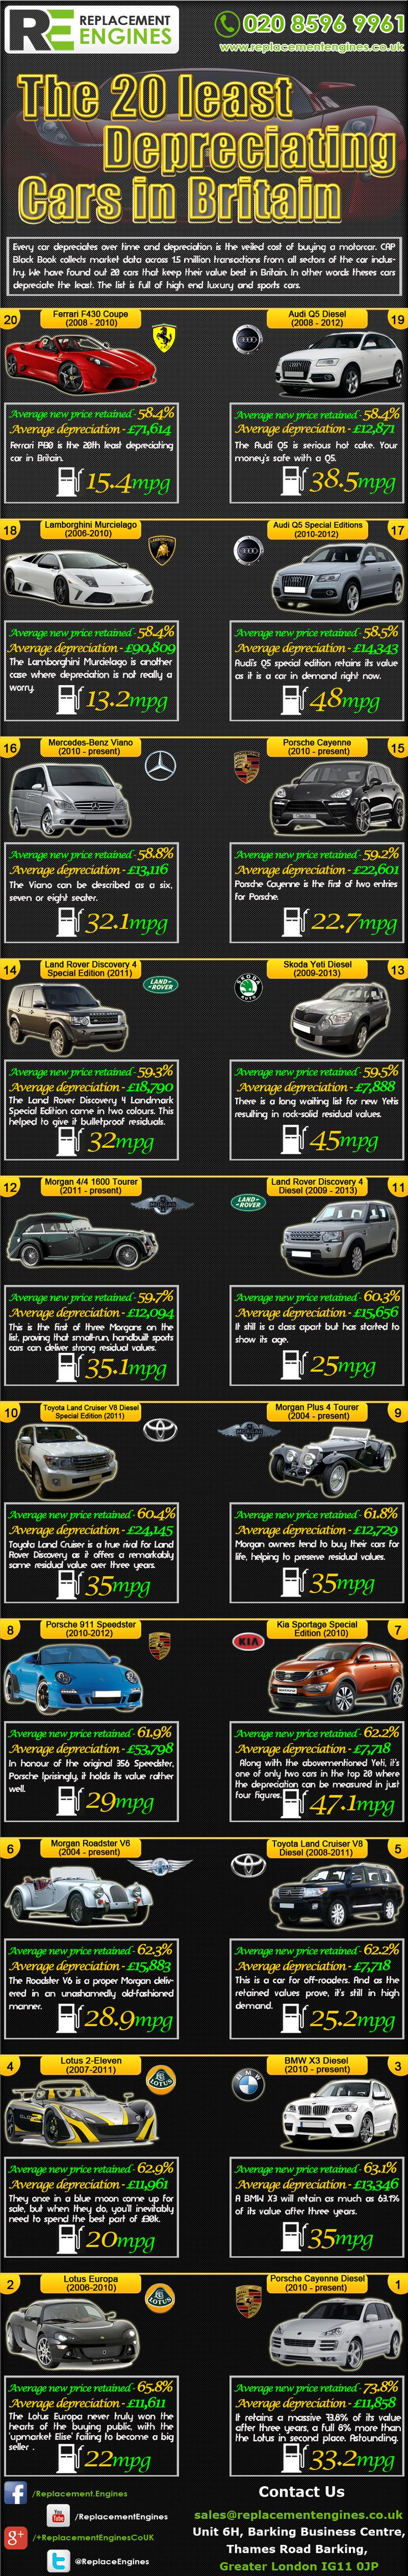 Top 20 Cars which hold on to their Value www.truefleet.co.uk